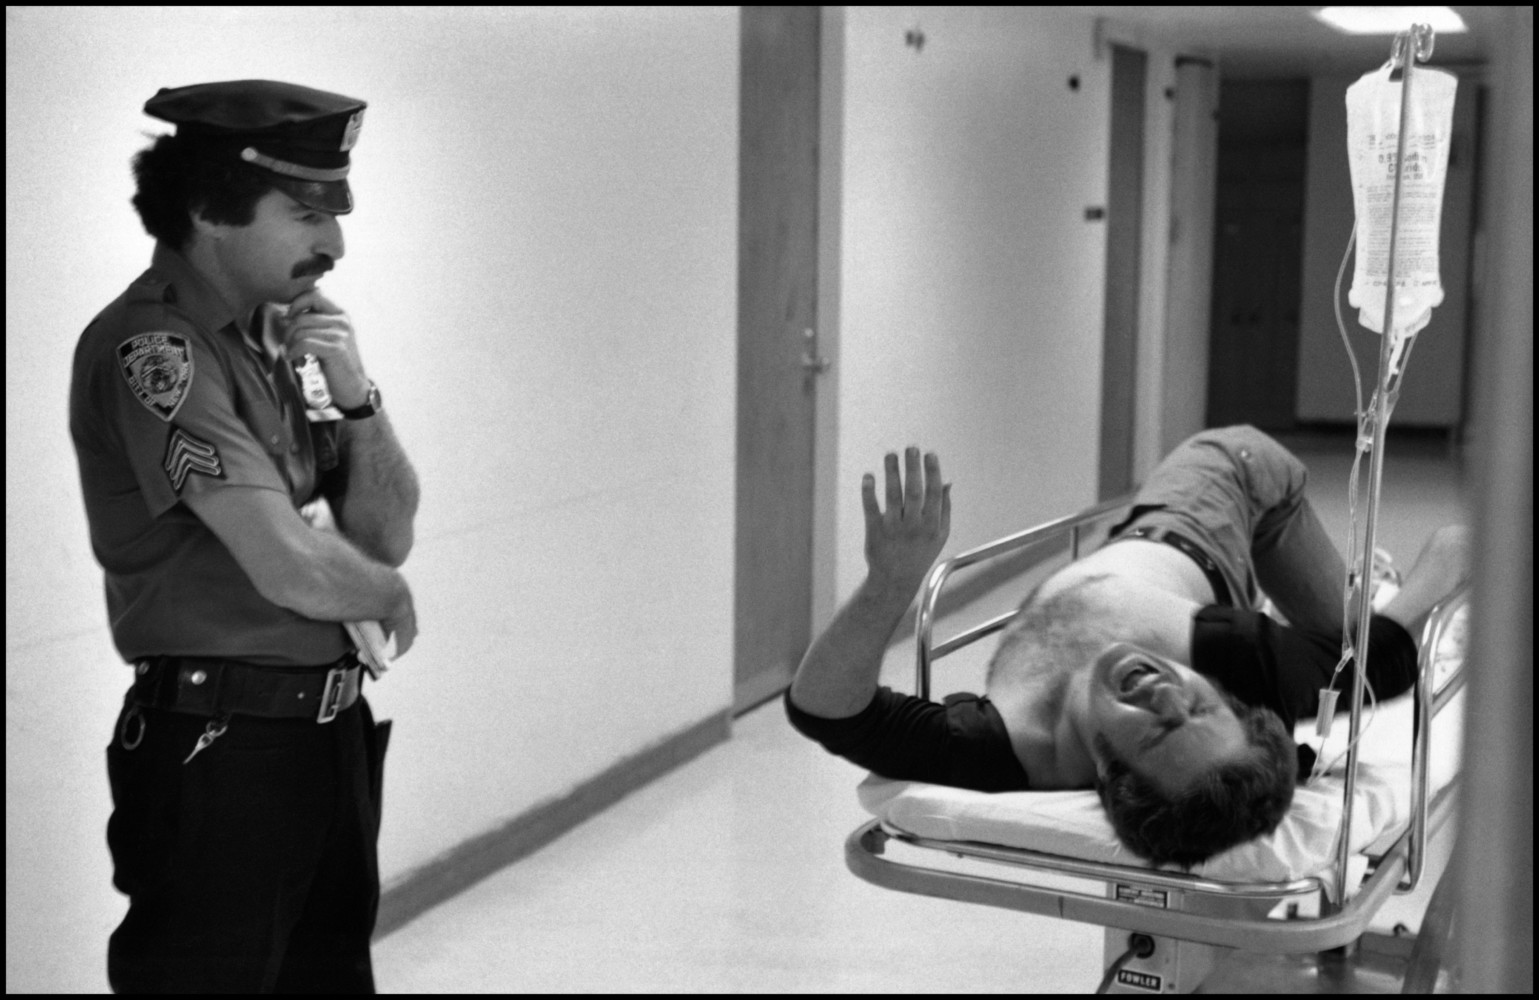 Making the Image: Leonard Freed's Work on the NYPD | Magnum Photos